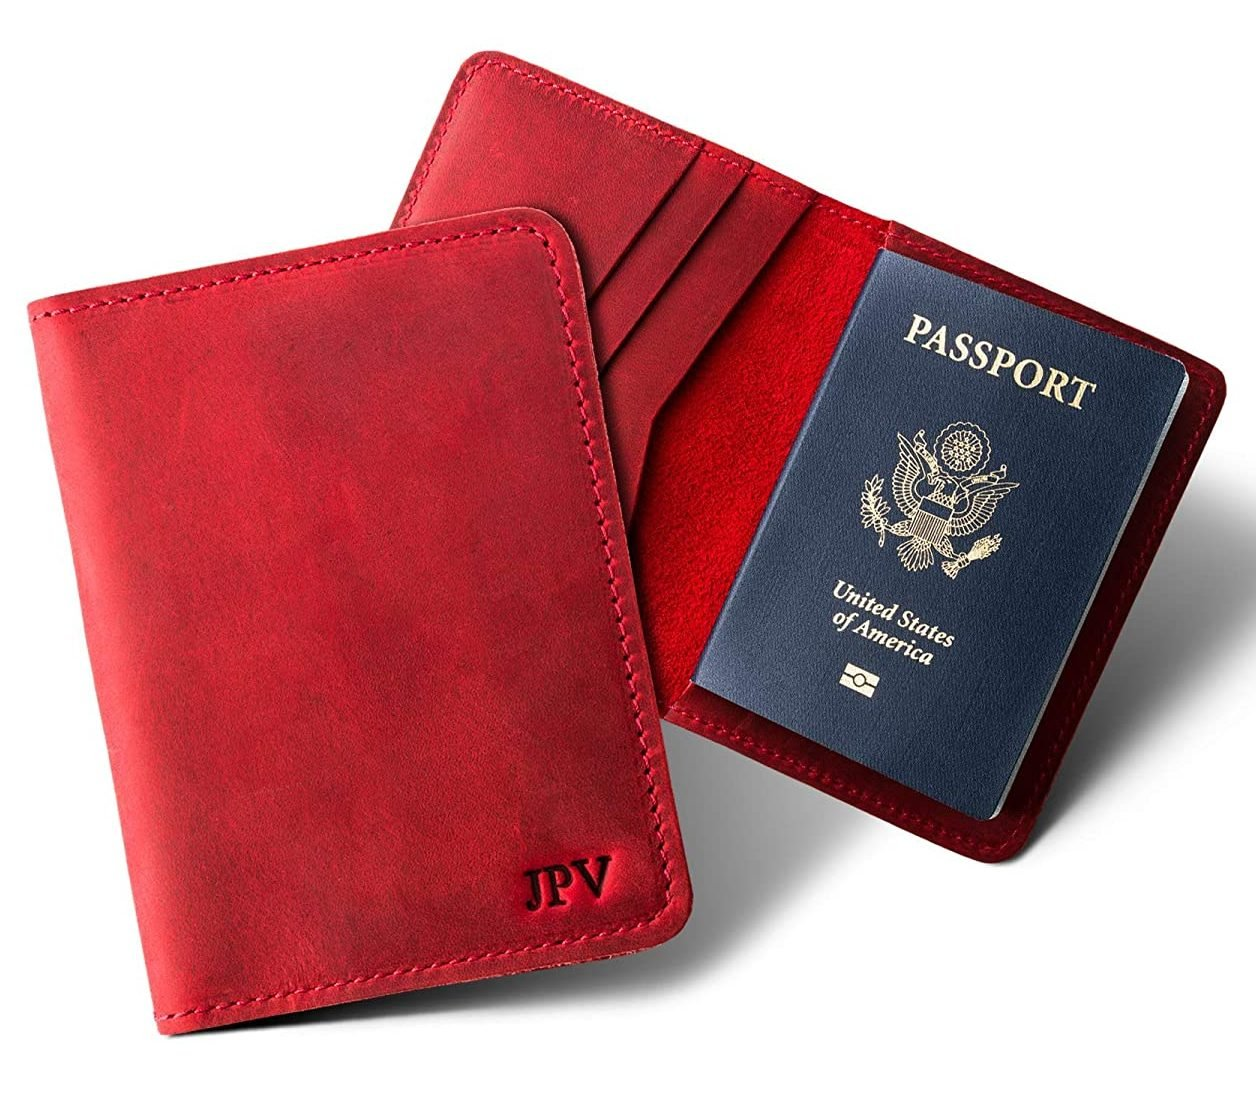 maid-of-honor-gifts-passport-wallet